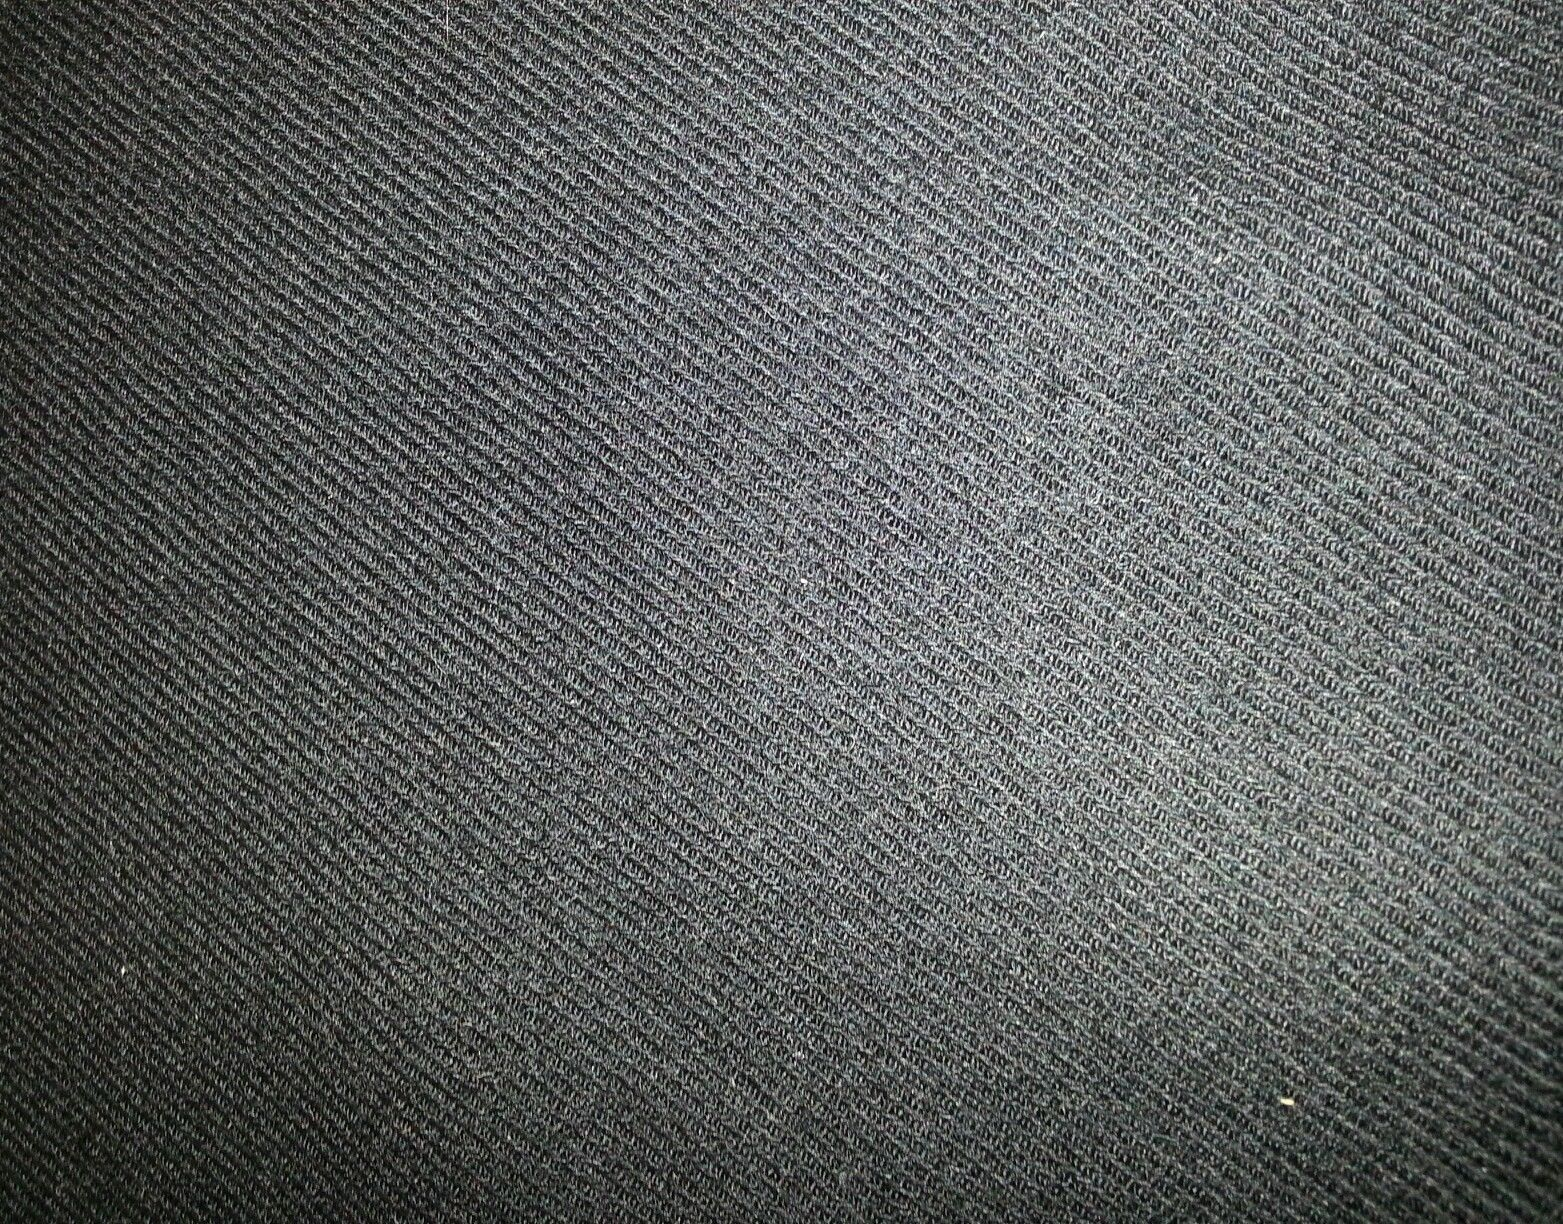 Black Twill Super 120'S  Full Weight Wool Suiting Fabric 5 Yards MSRP $695